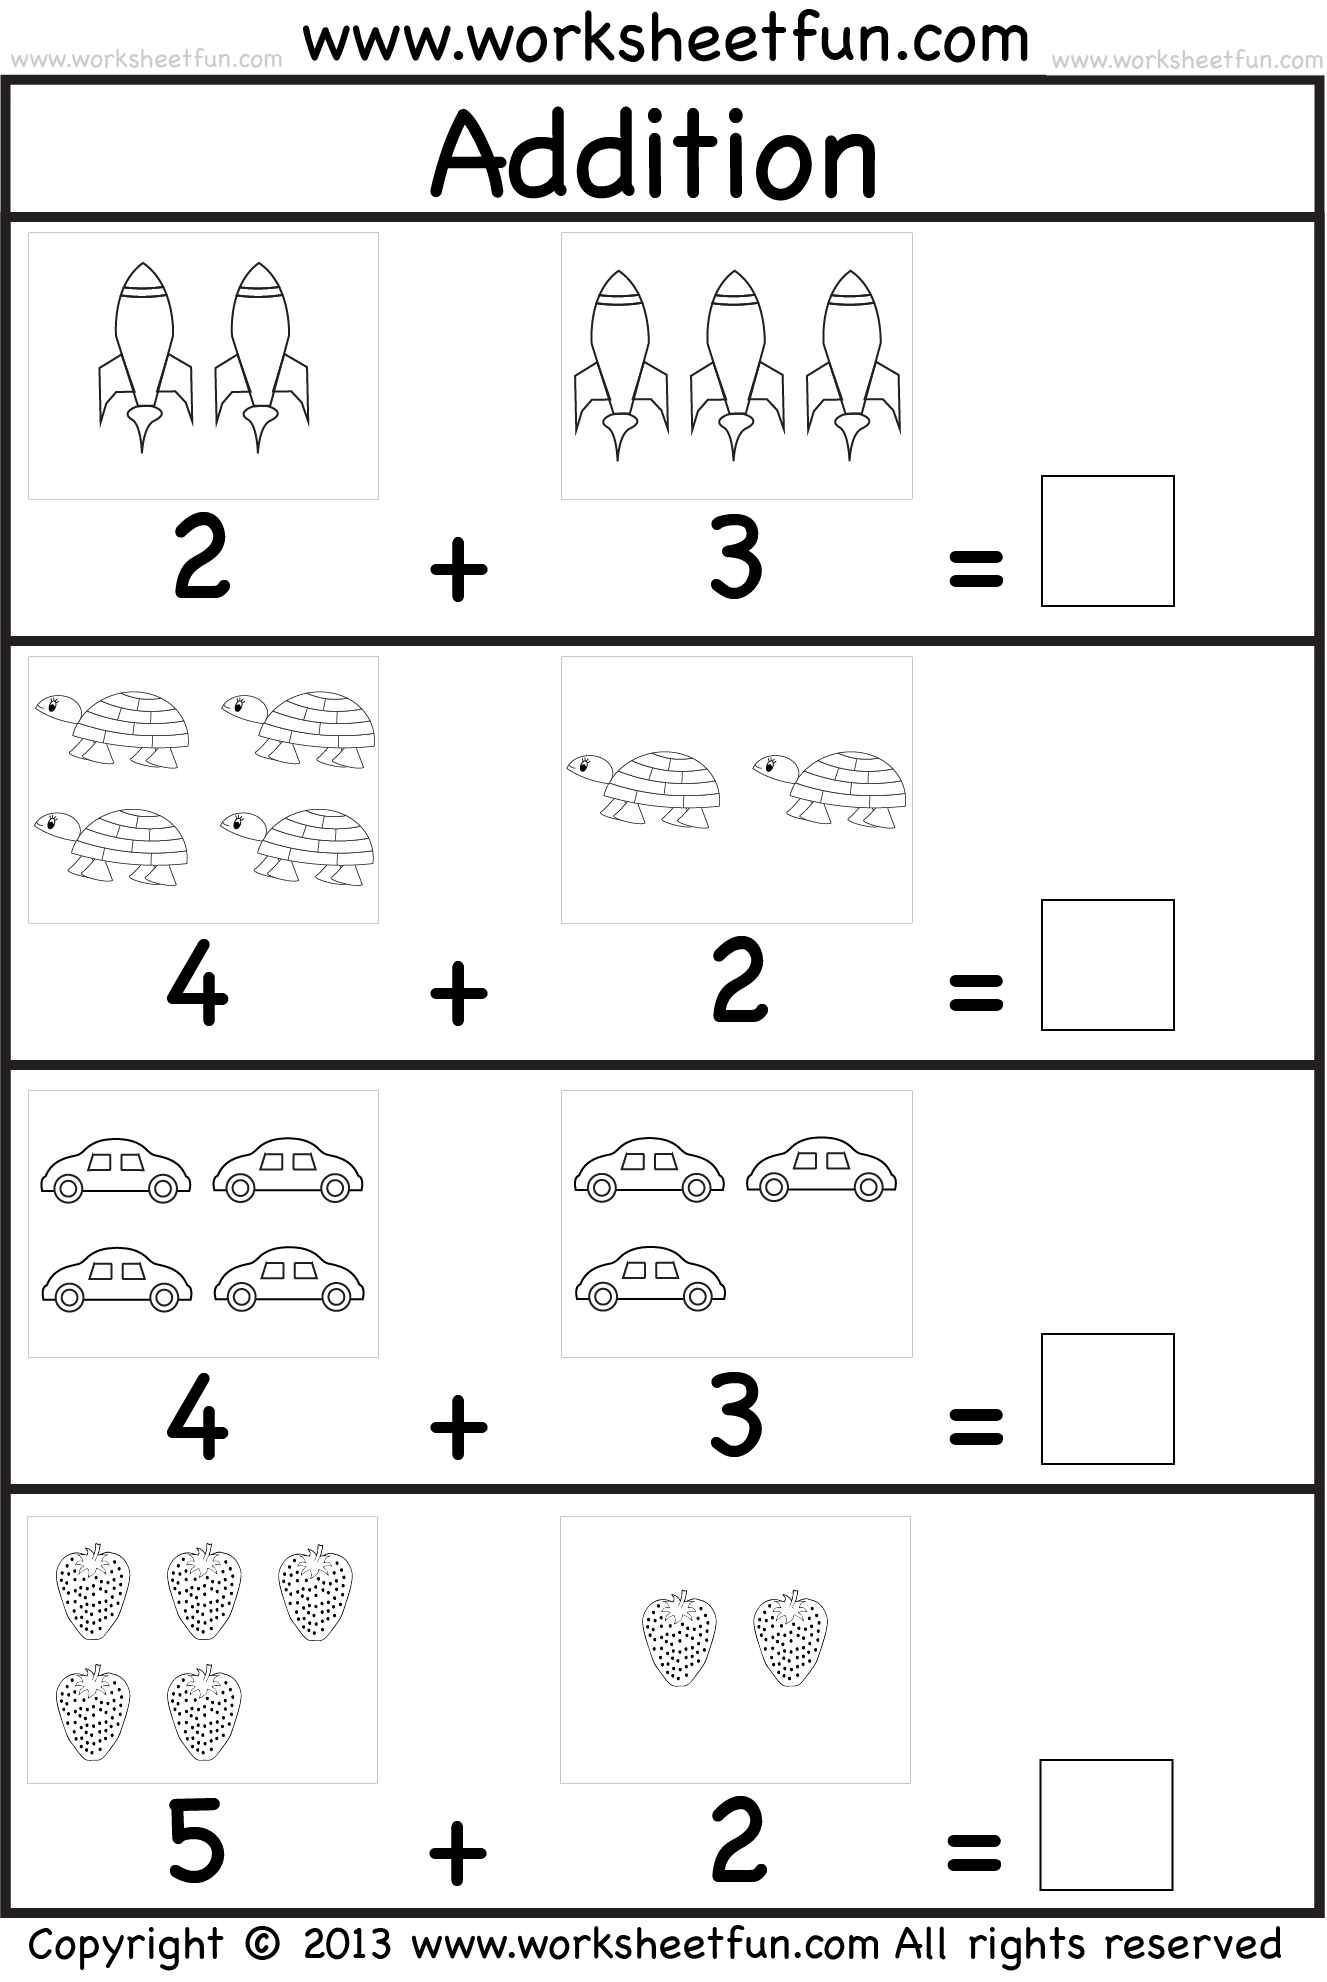 Uncategorized Pre K Math Worksheets addition worksheet this site has great free worksheets for everything from abcs to math